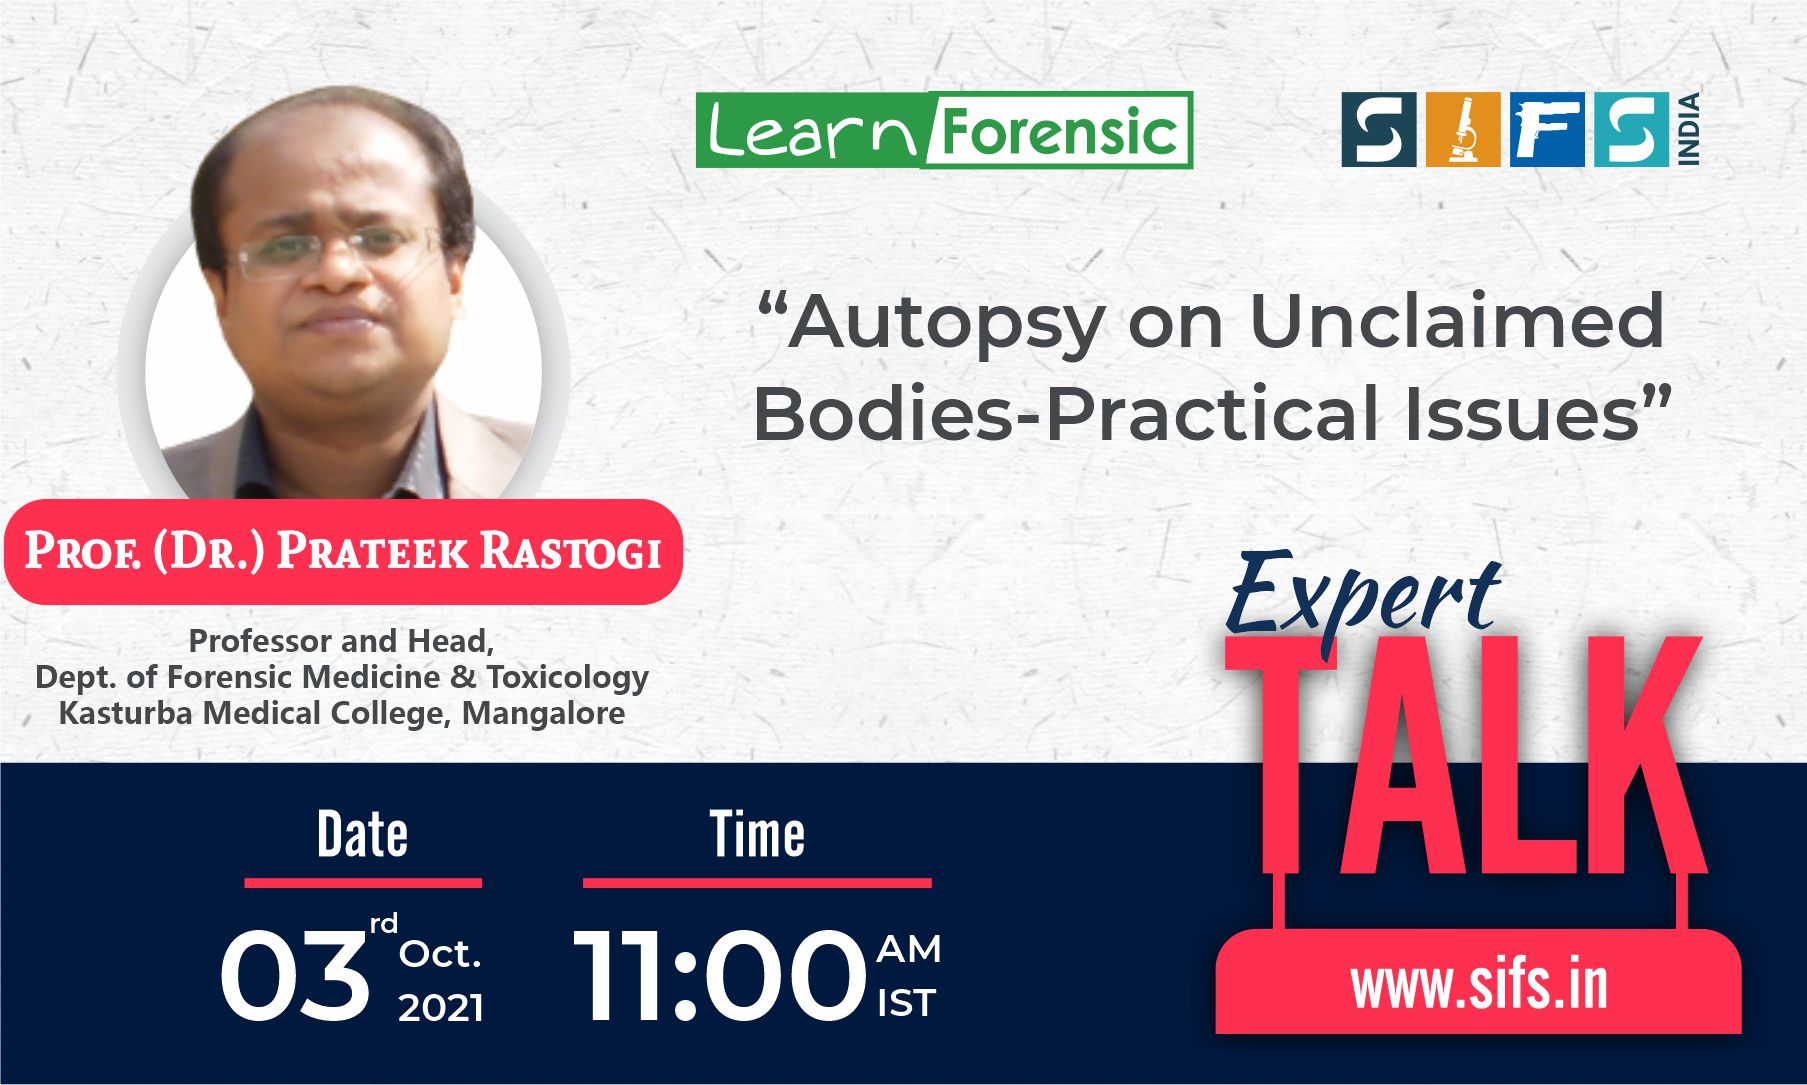 Autopsy on Unclaimed Bodies-Practical Issues